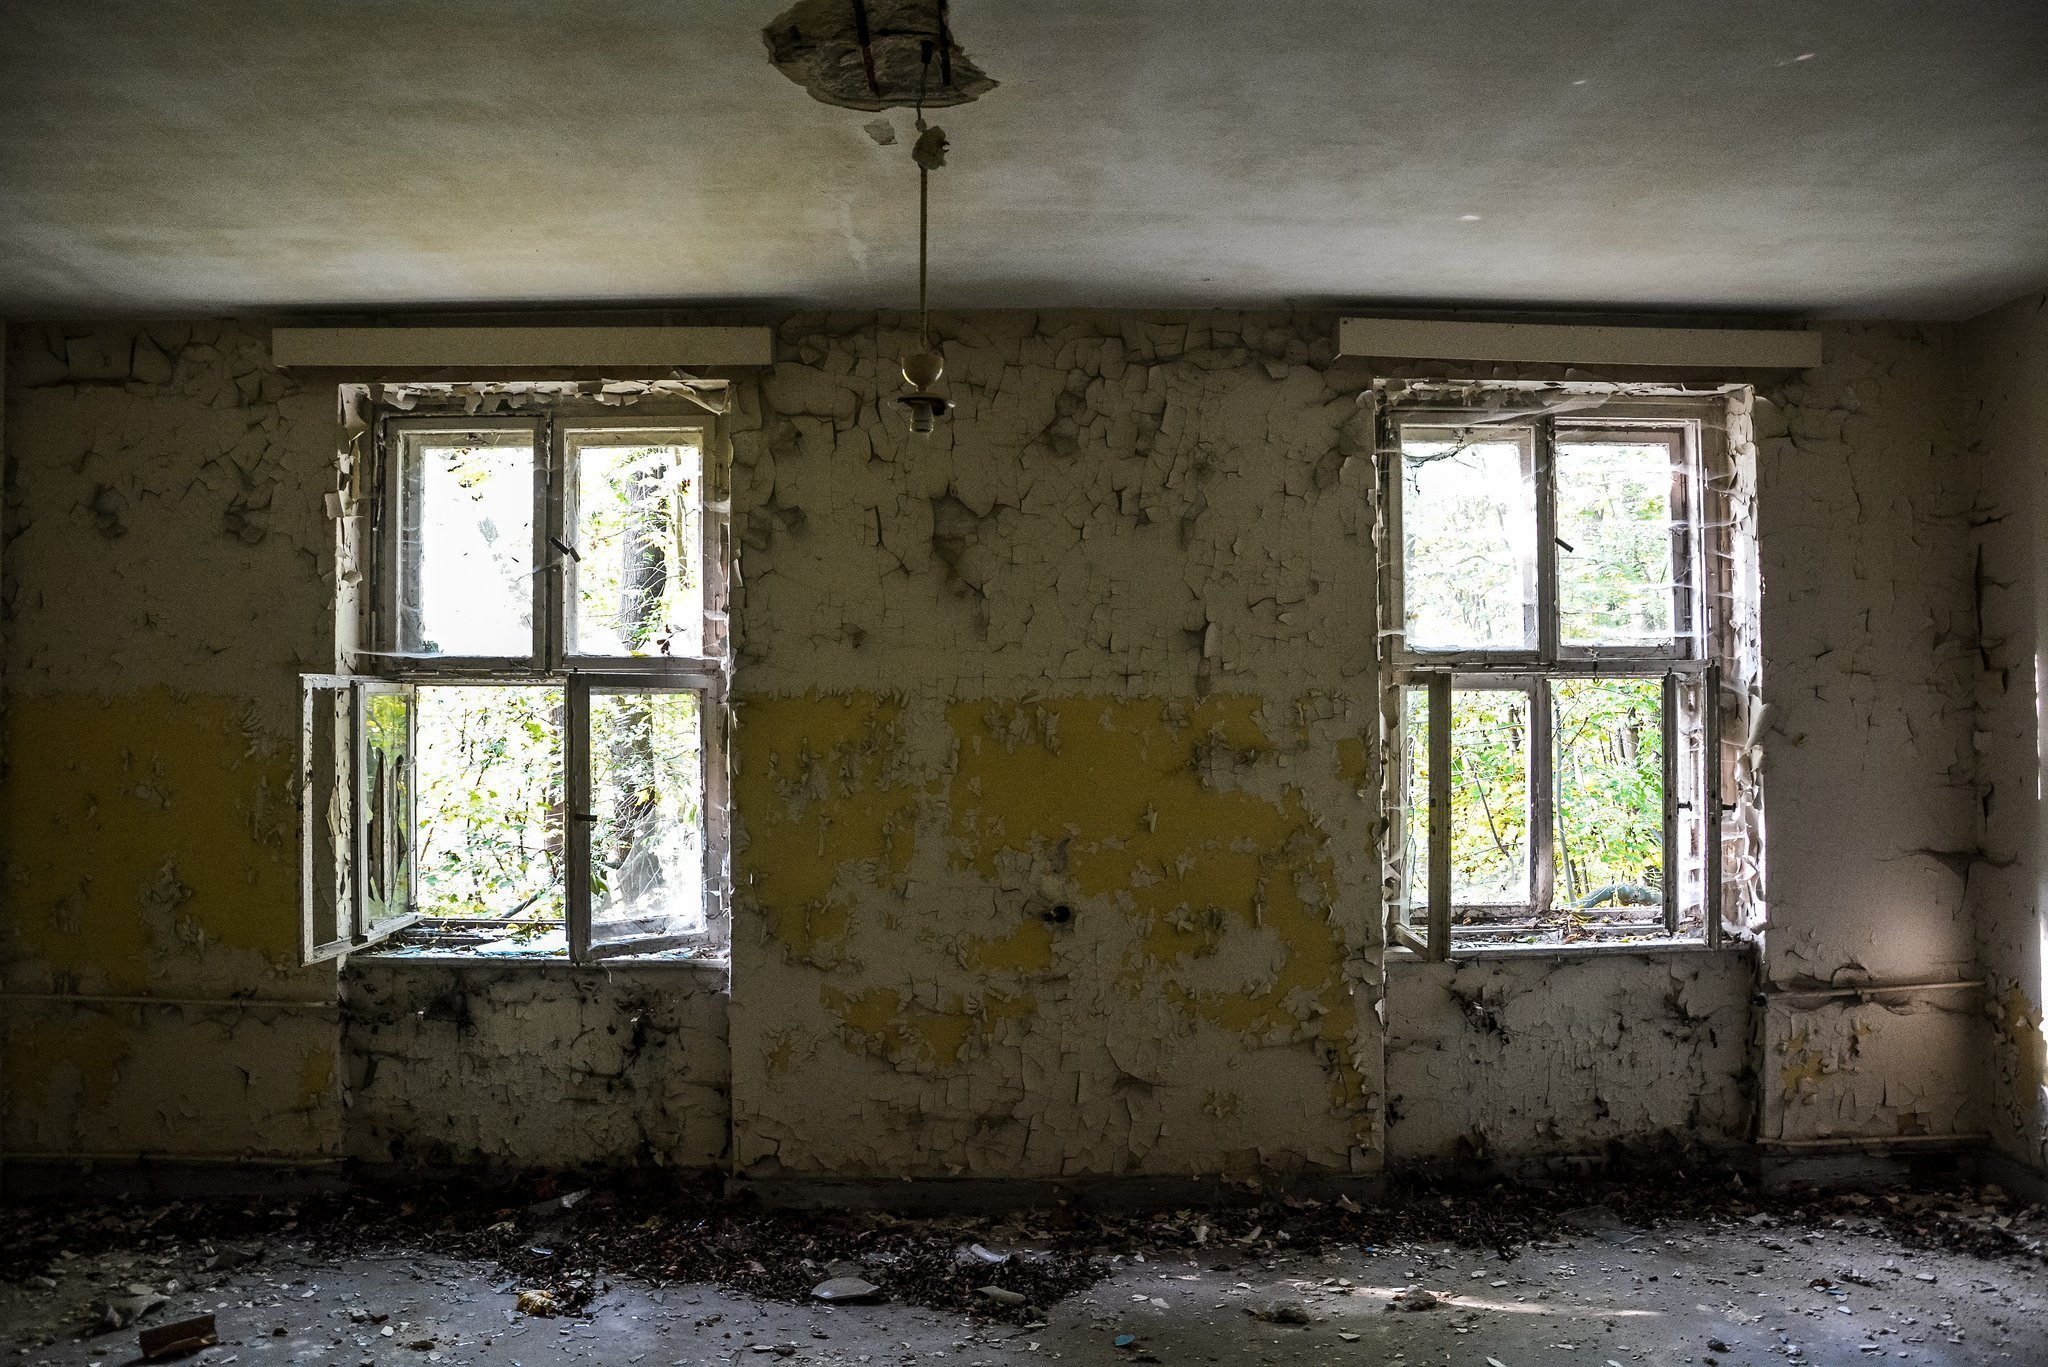 abandoned hospital berlin verlassenes krankenhaus lost places urbex fenster ruins windows